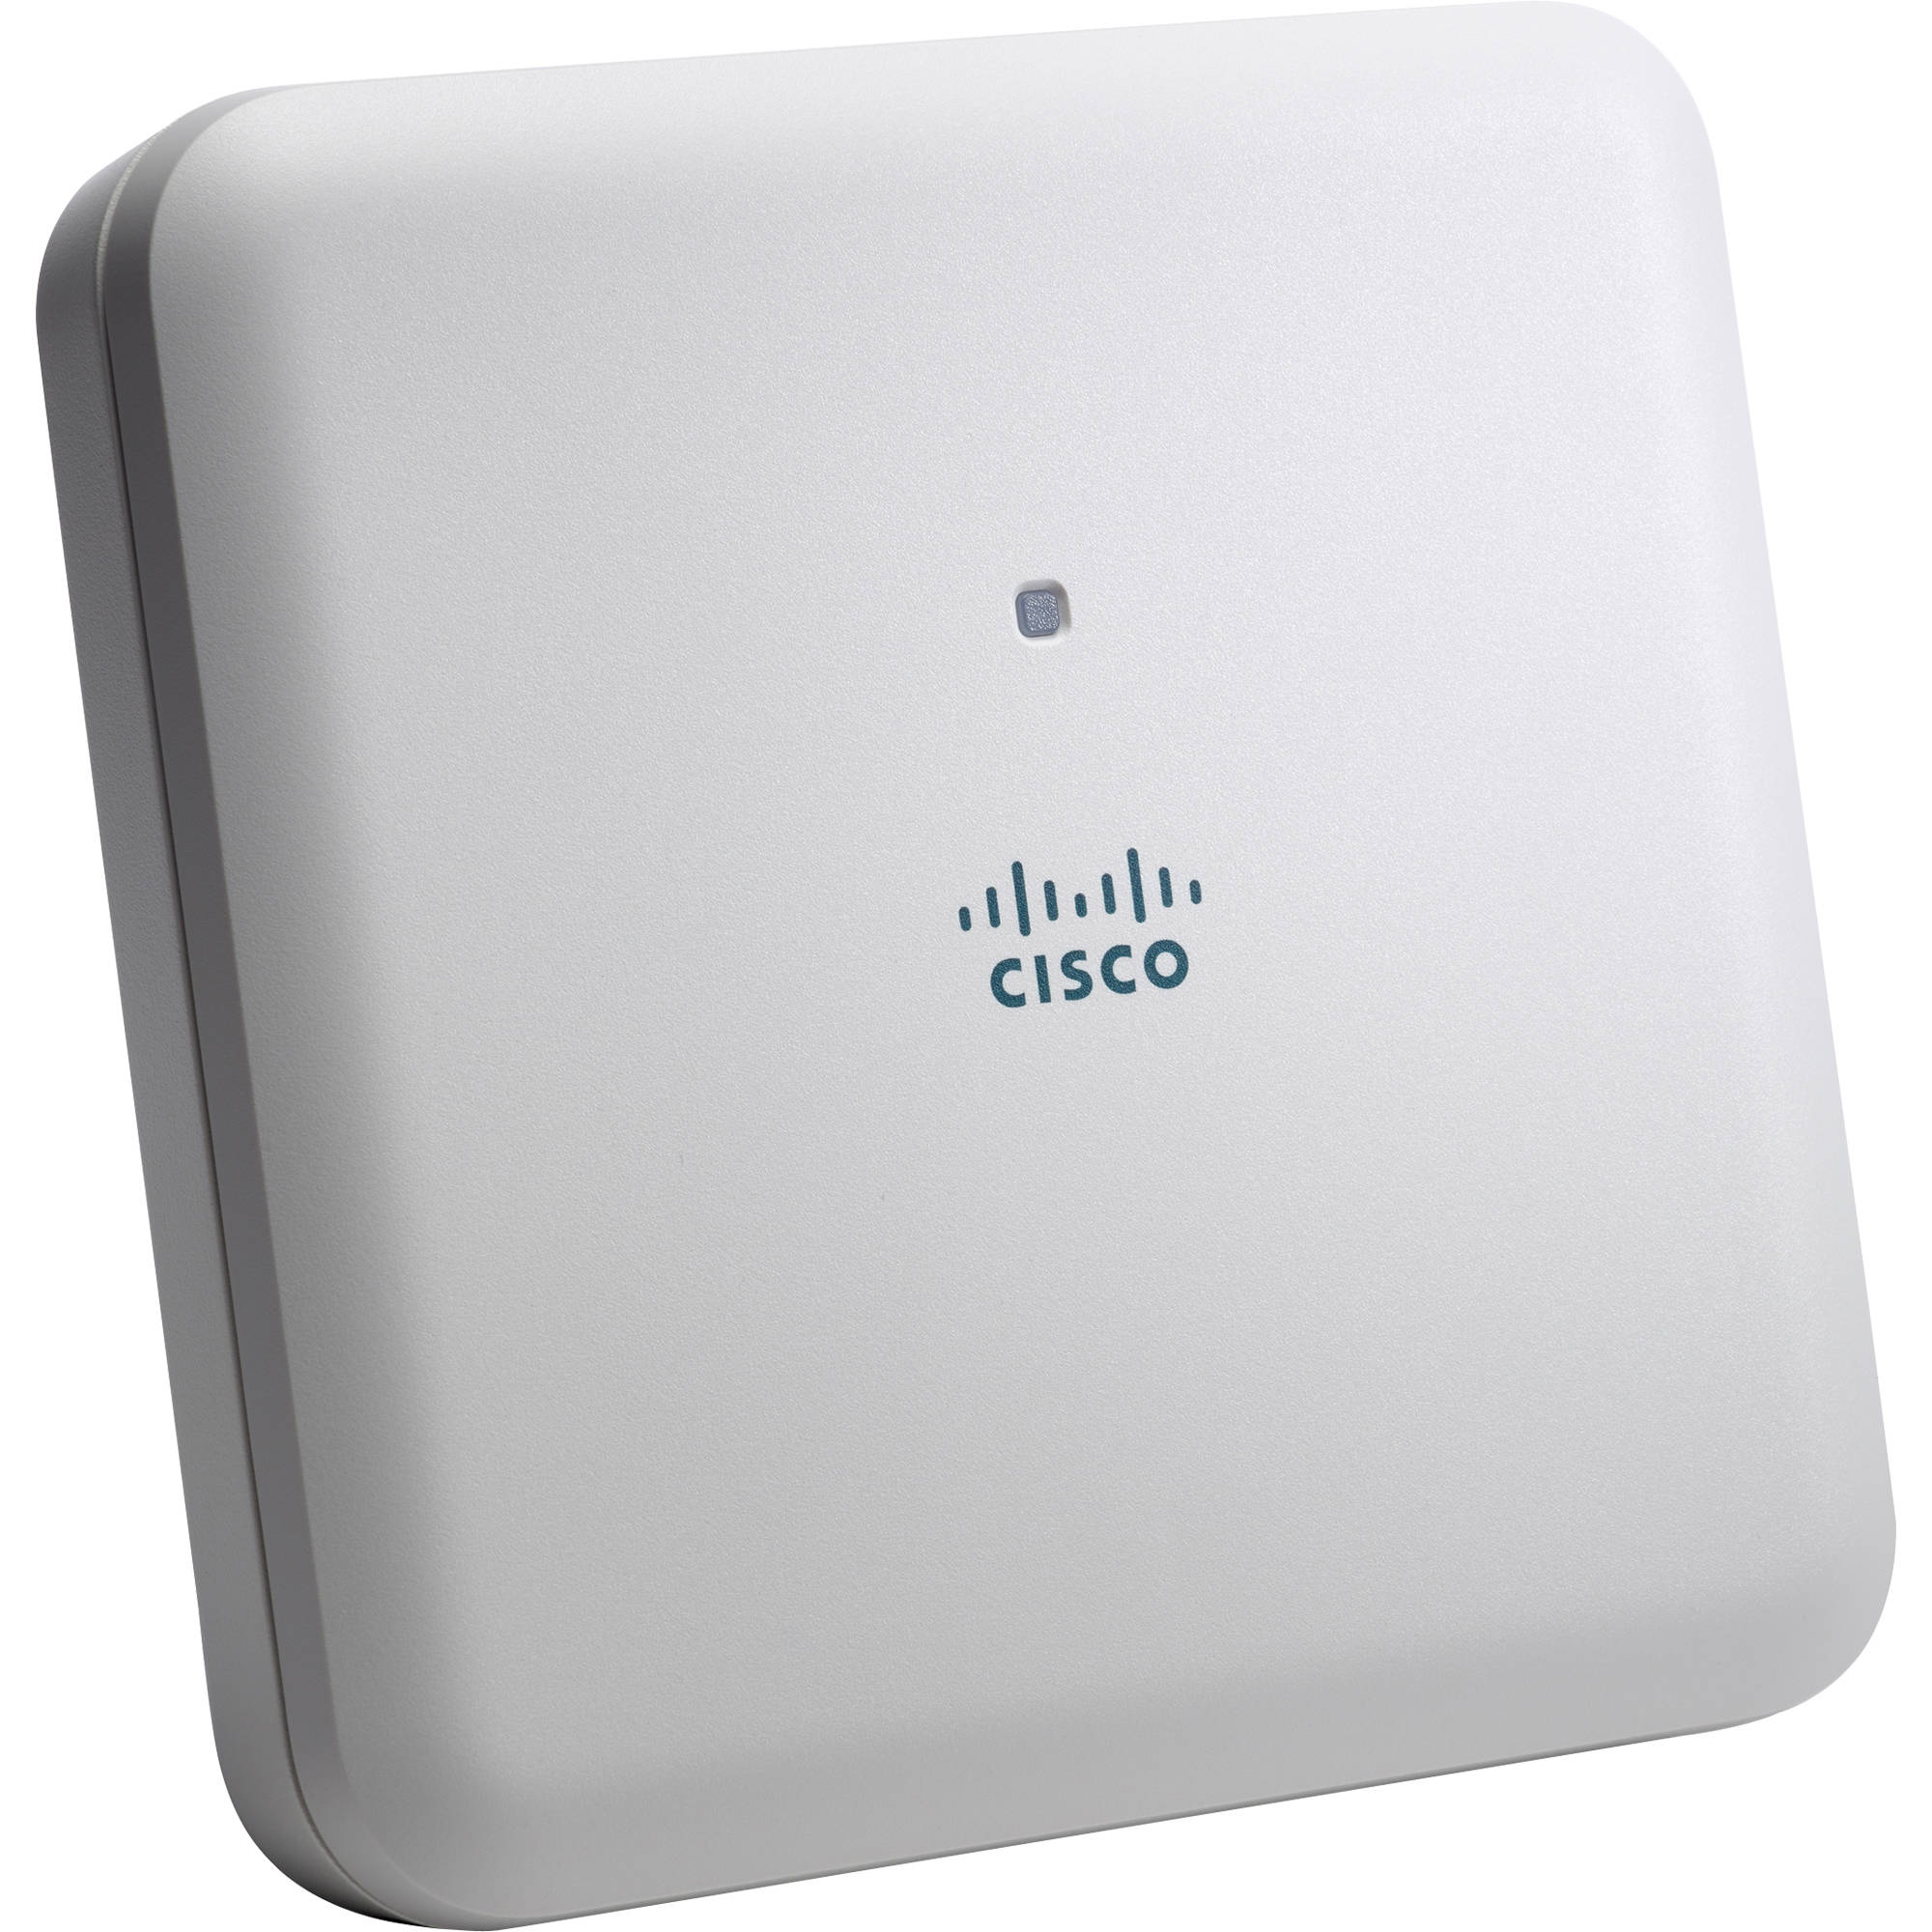 Cisco Aironet 1832i Dual-Band Access Point with Cisco Mobility Express  Software